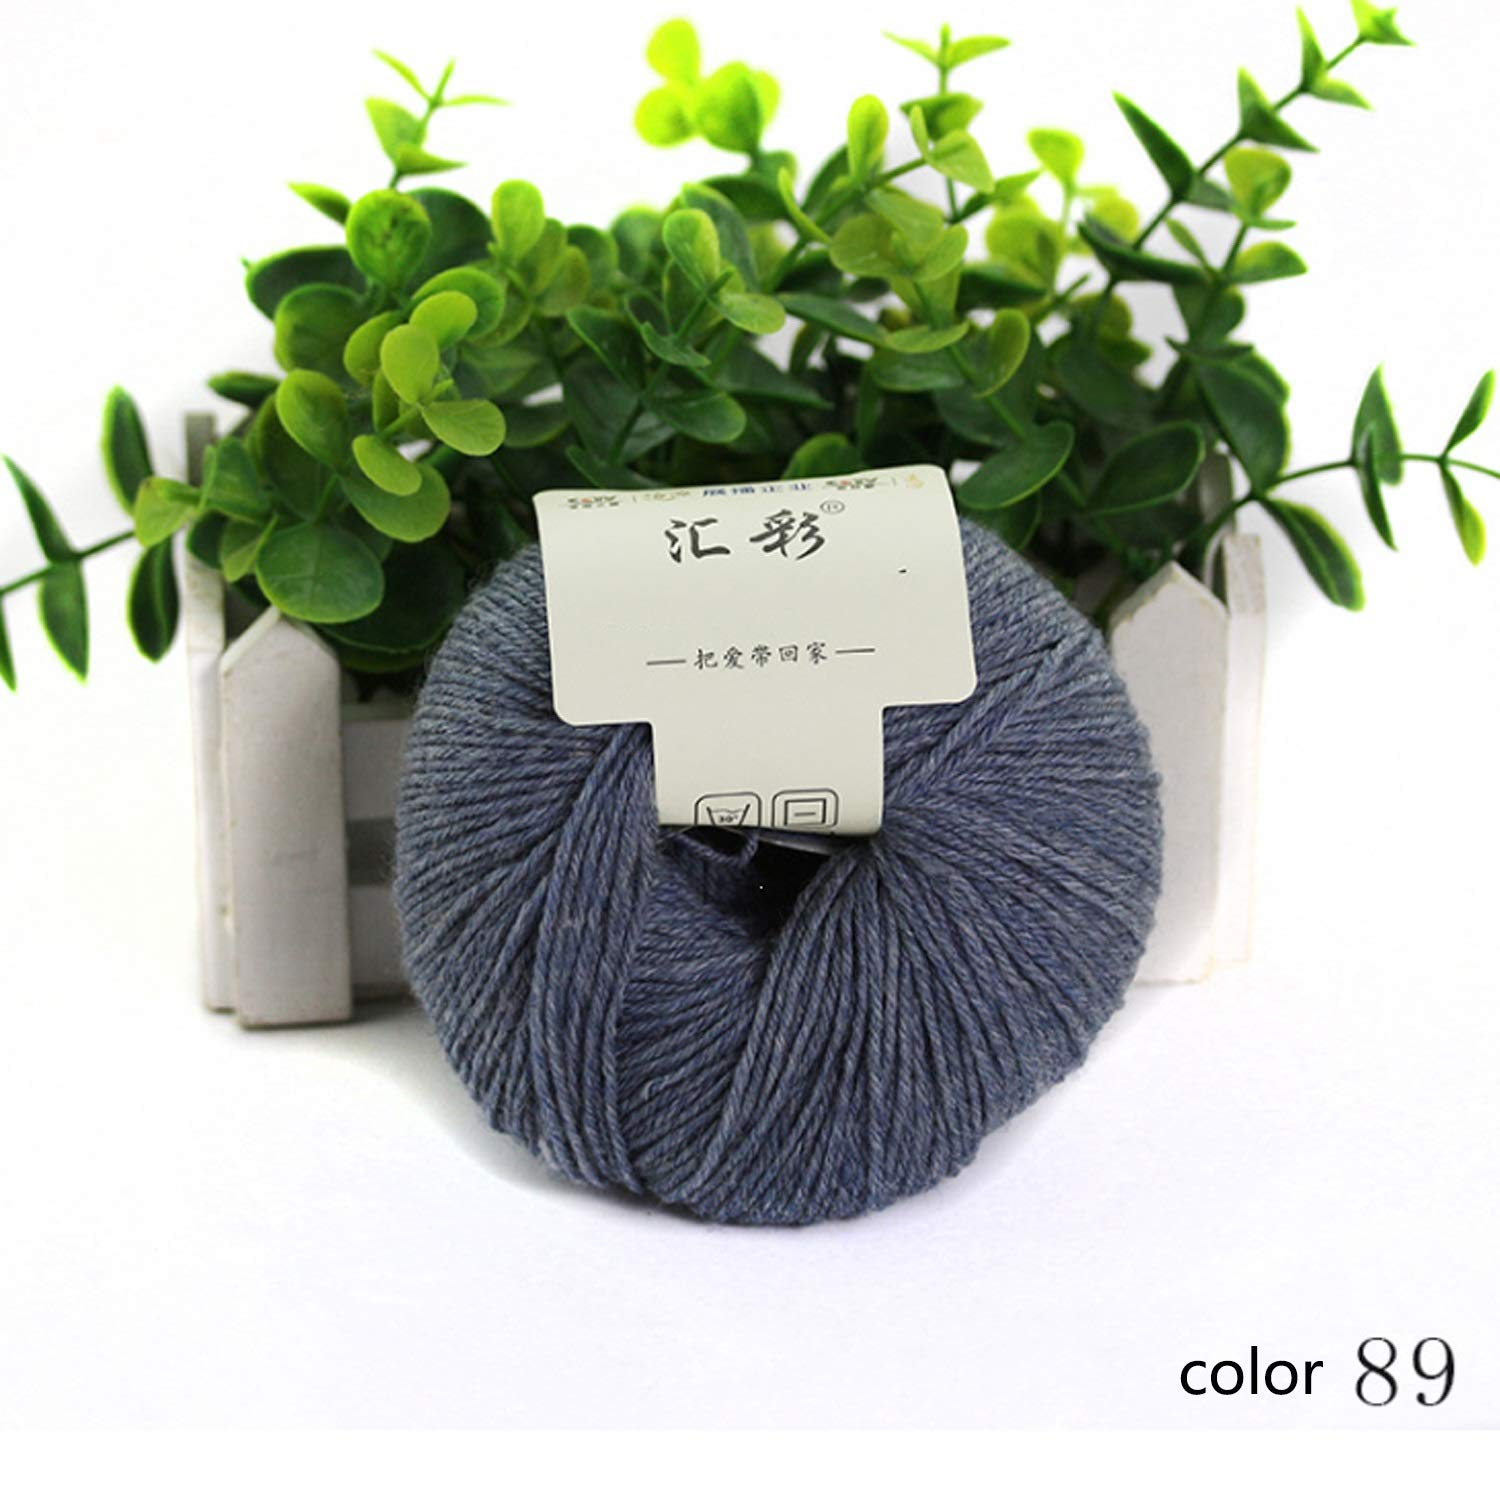 Col 89 10 balls Shuo lan hu wai Yarn knitting yarn wool yarn autumn winter hand series scarf line soft baby sweater line 1 ball about 50 g 4 15 NM 15 colors available (color   Col 89, UnitCount   10 balls)